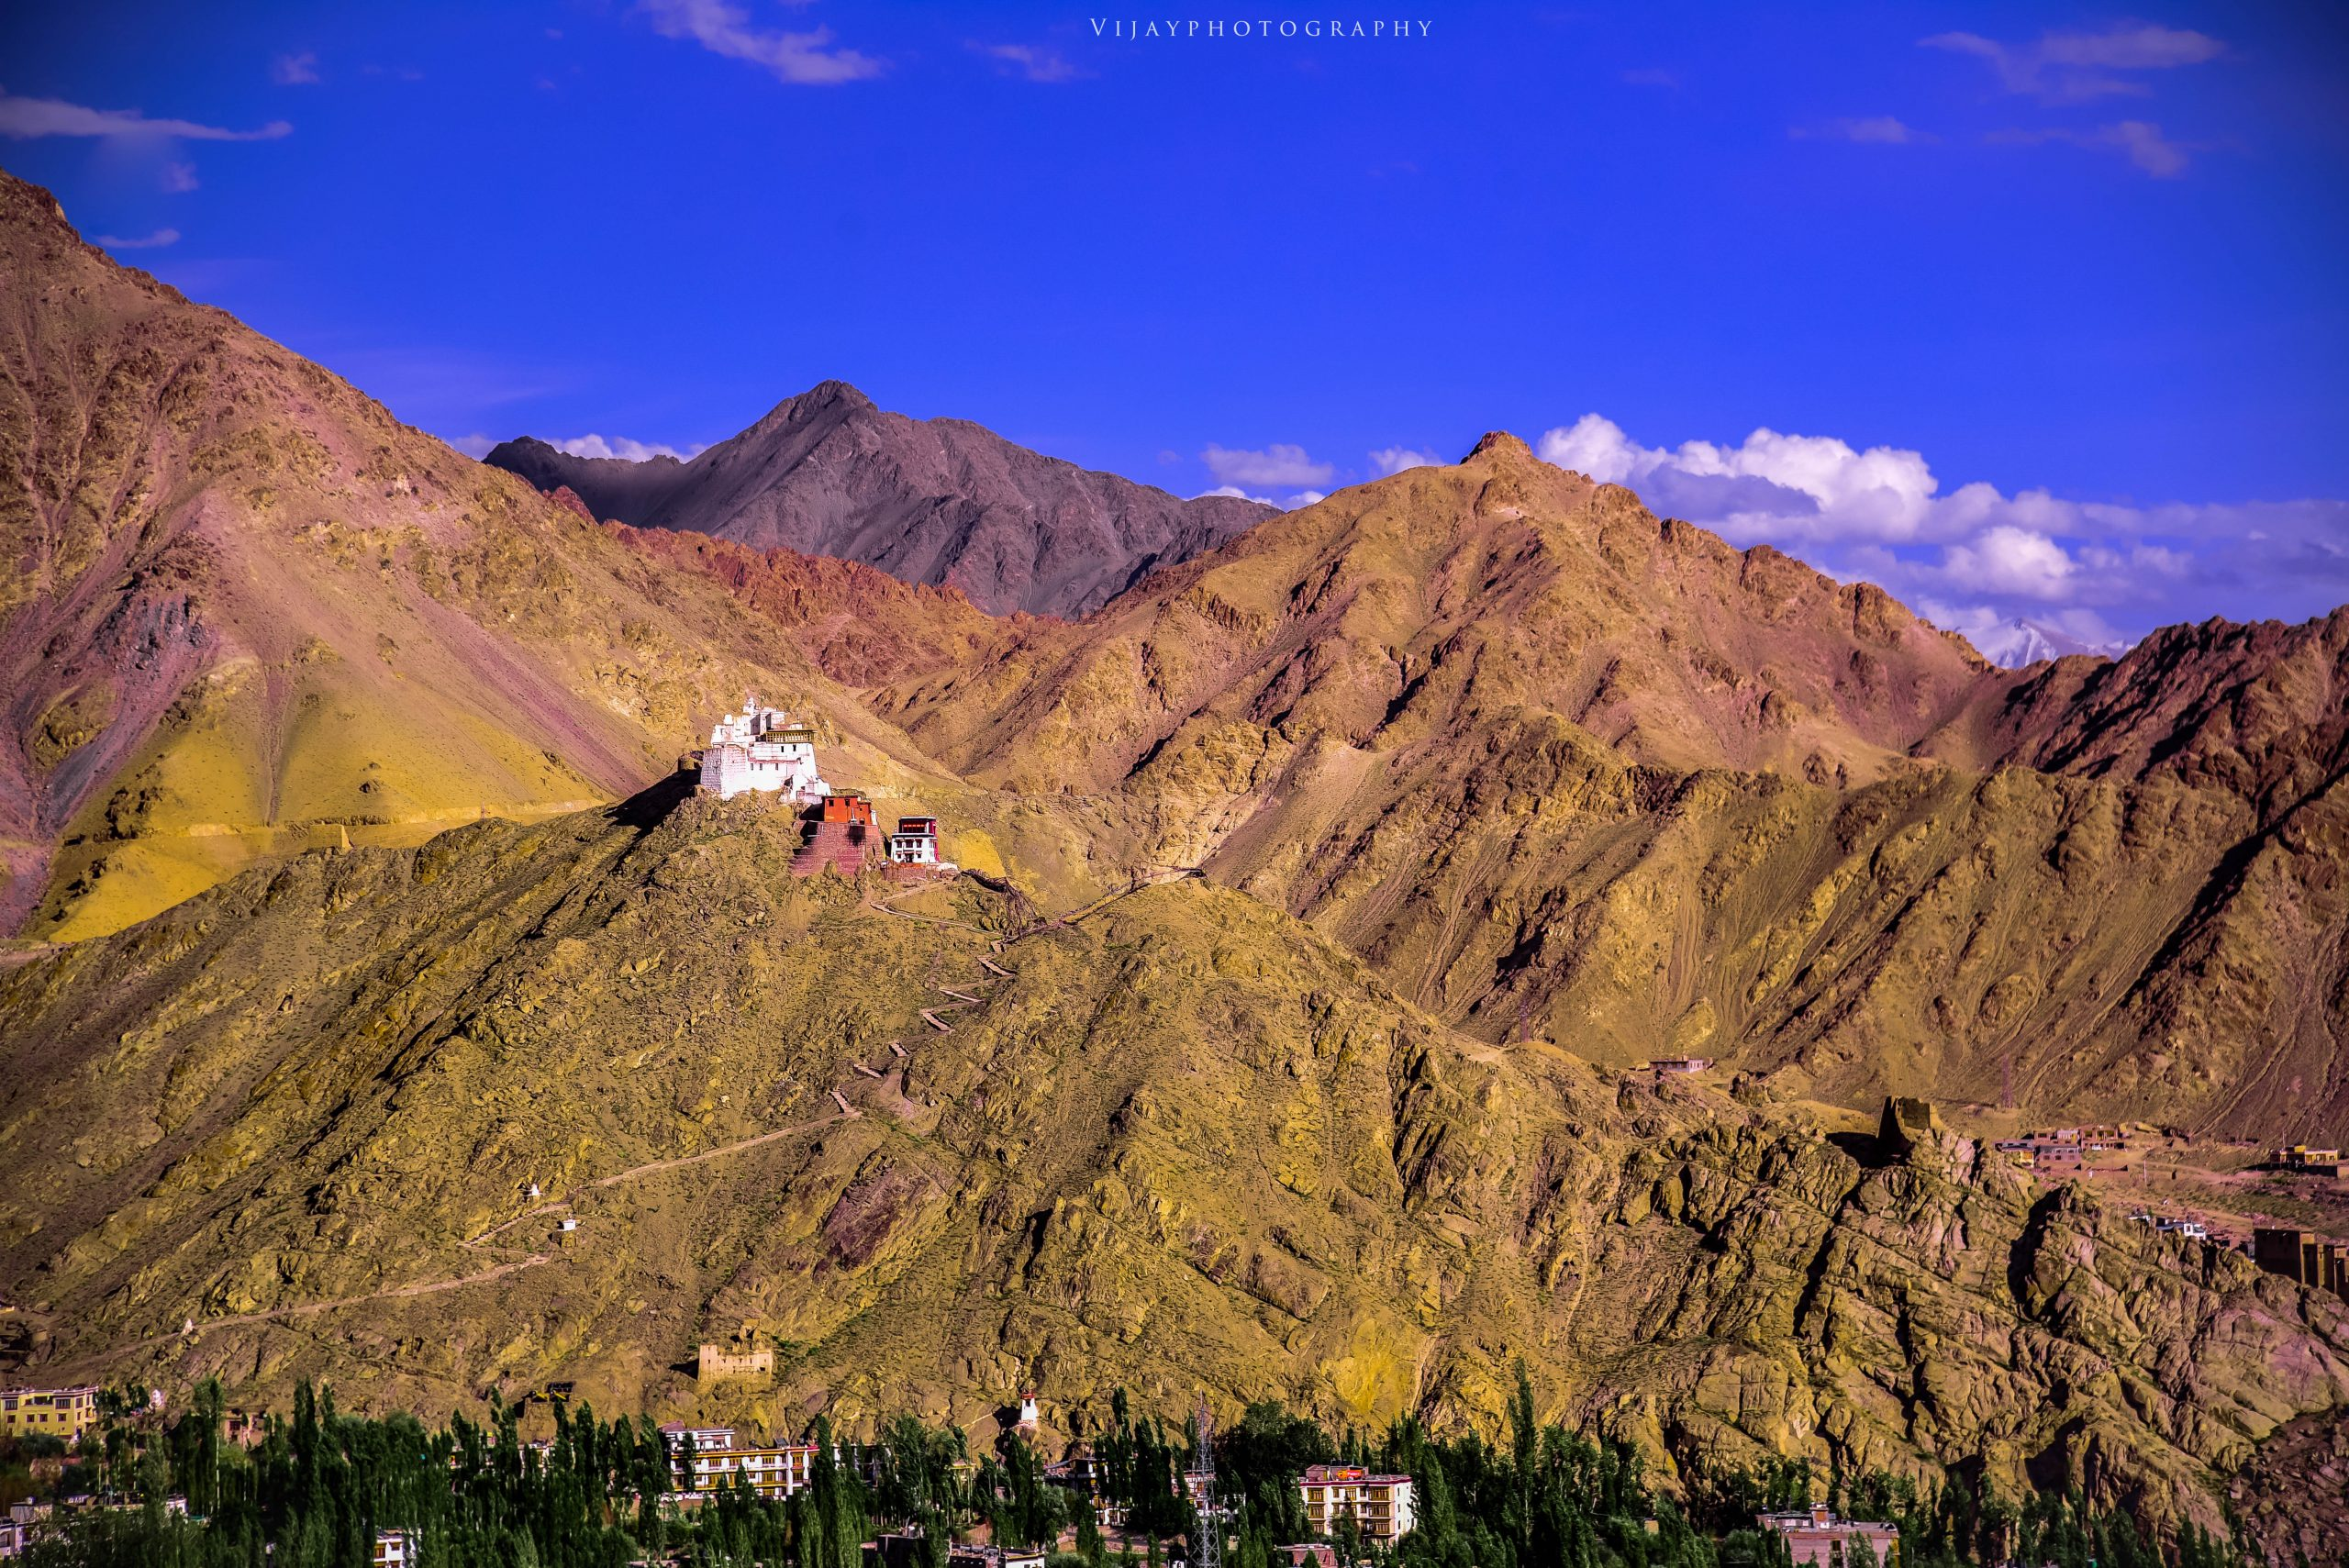 Colorful ladakh